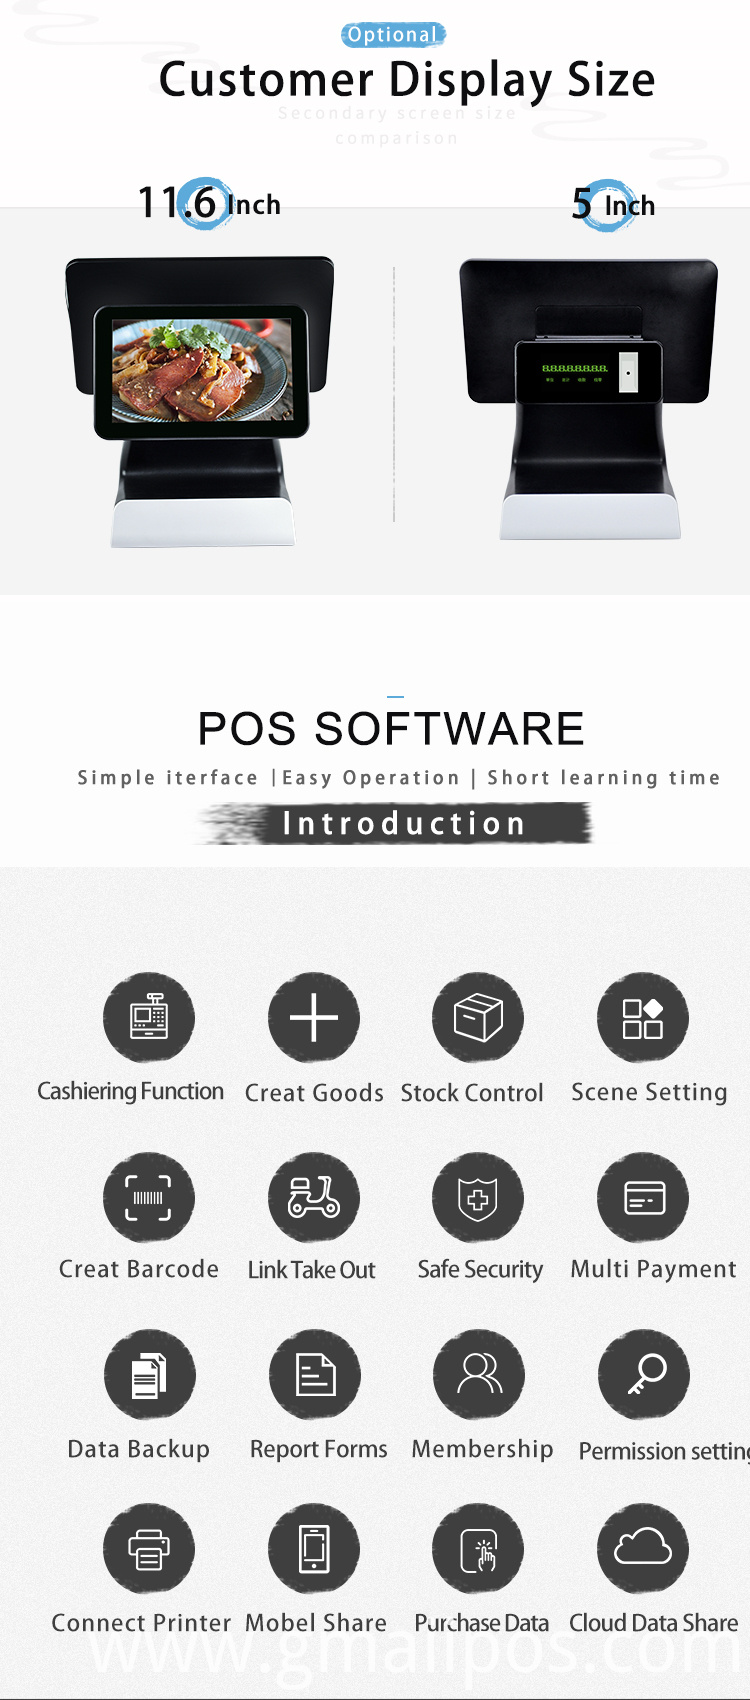 Pos Software for Retail